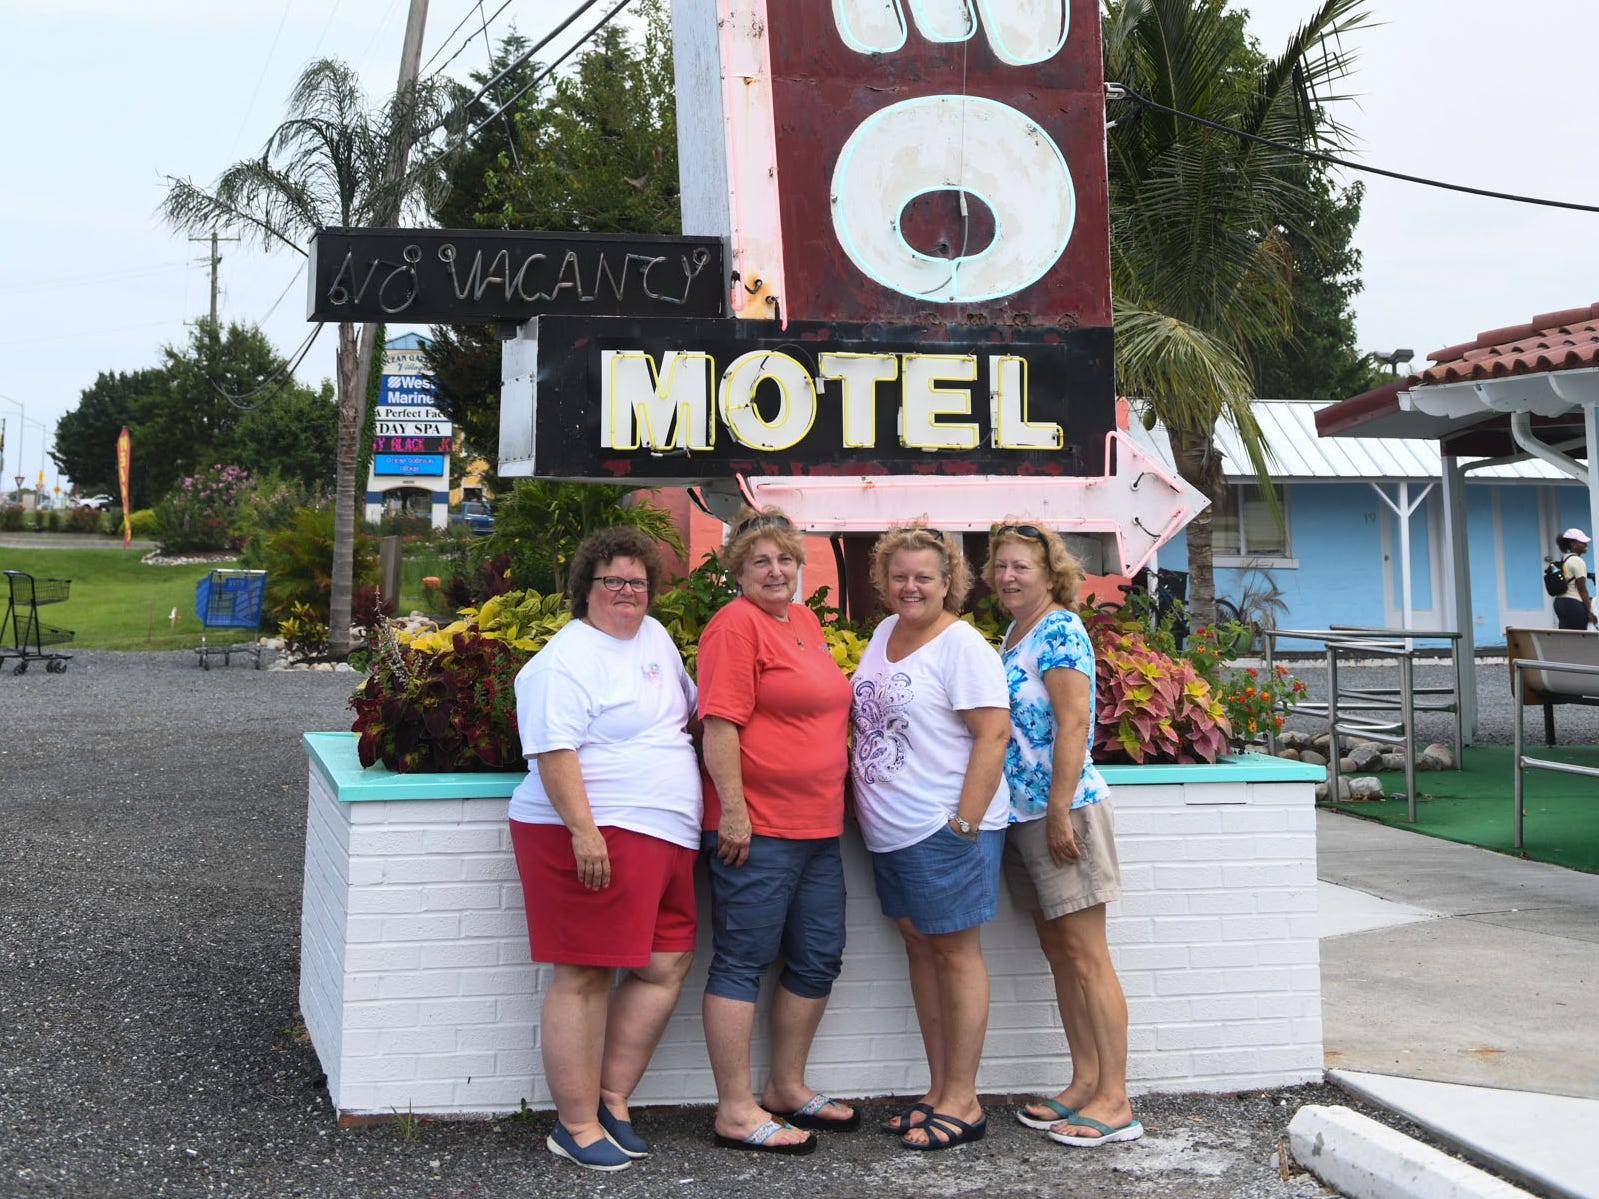 Rebecca Kunz, 57, of Point of Rocks, Md., Sue Jones, 65, of Sykesville, Md., Melinda Bassett, 62, of Jefferson, Md., and Jennifer Sasso, 60, of Milford, Conn., pose in front of the Alamo Motel in West Ocean City. Their great uncle, Bill Weaver, founded the business in 1946.